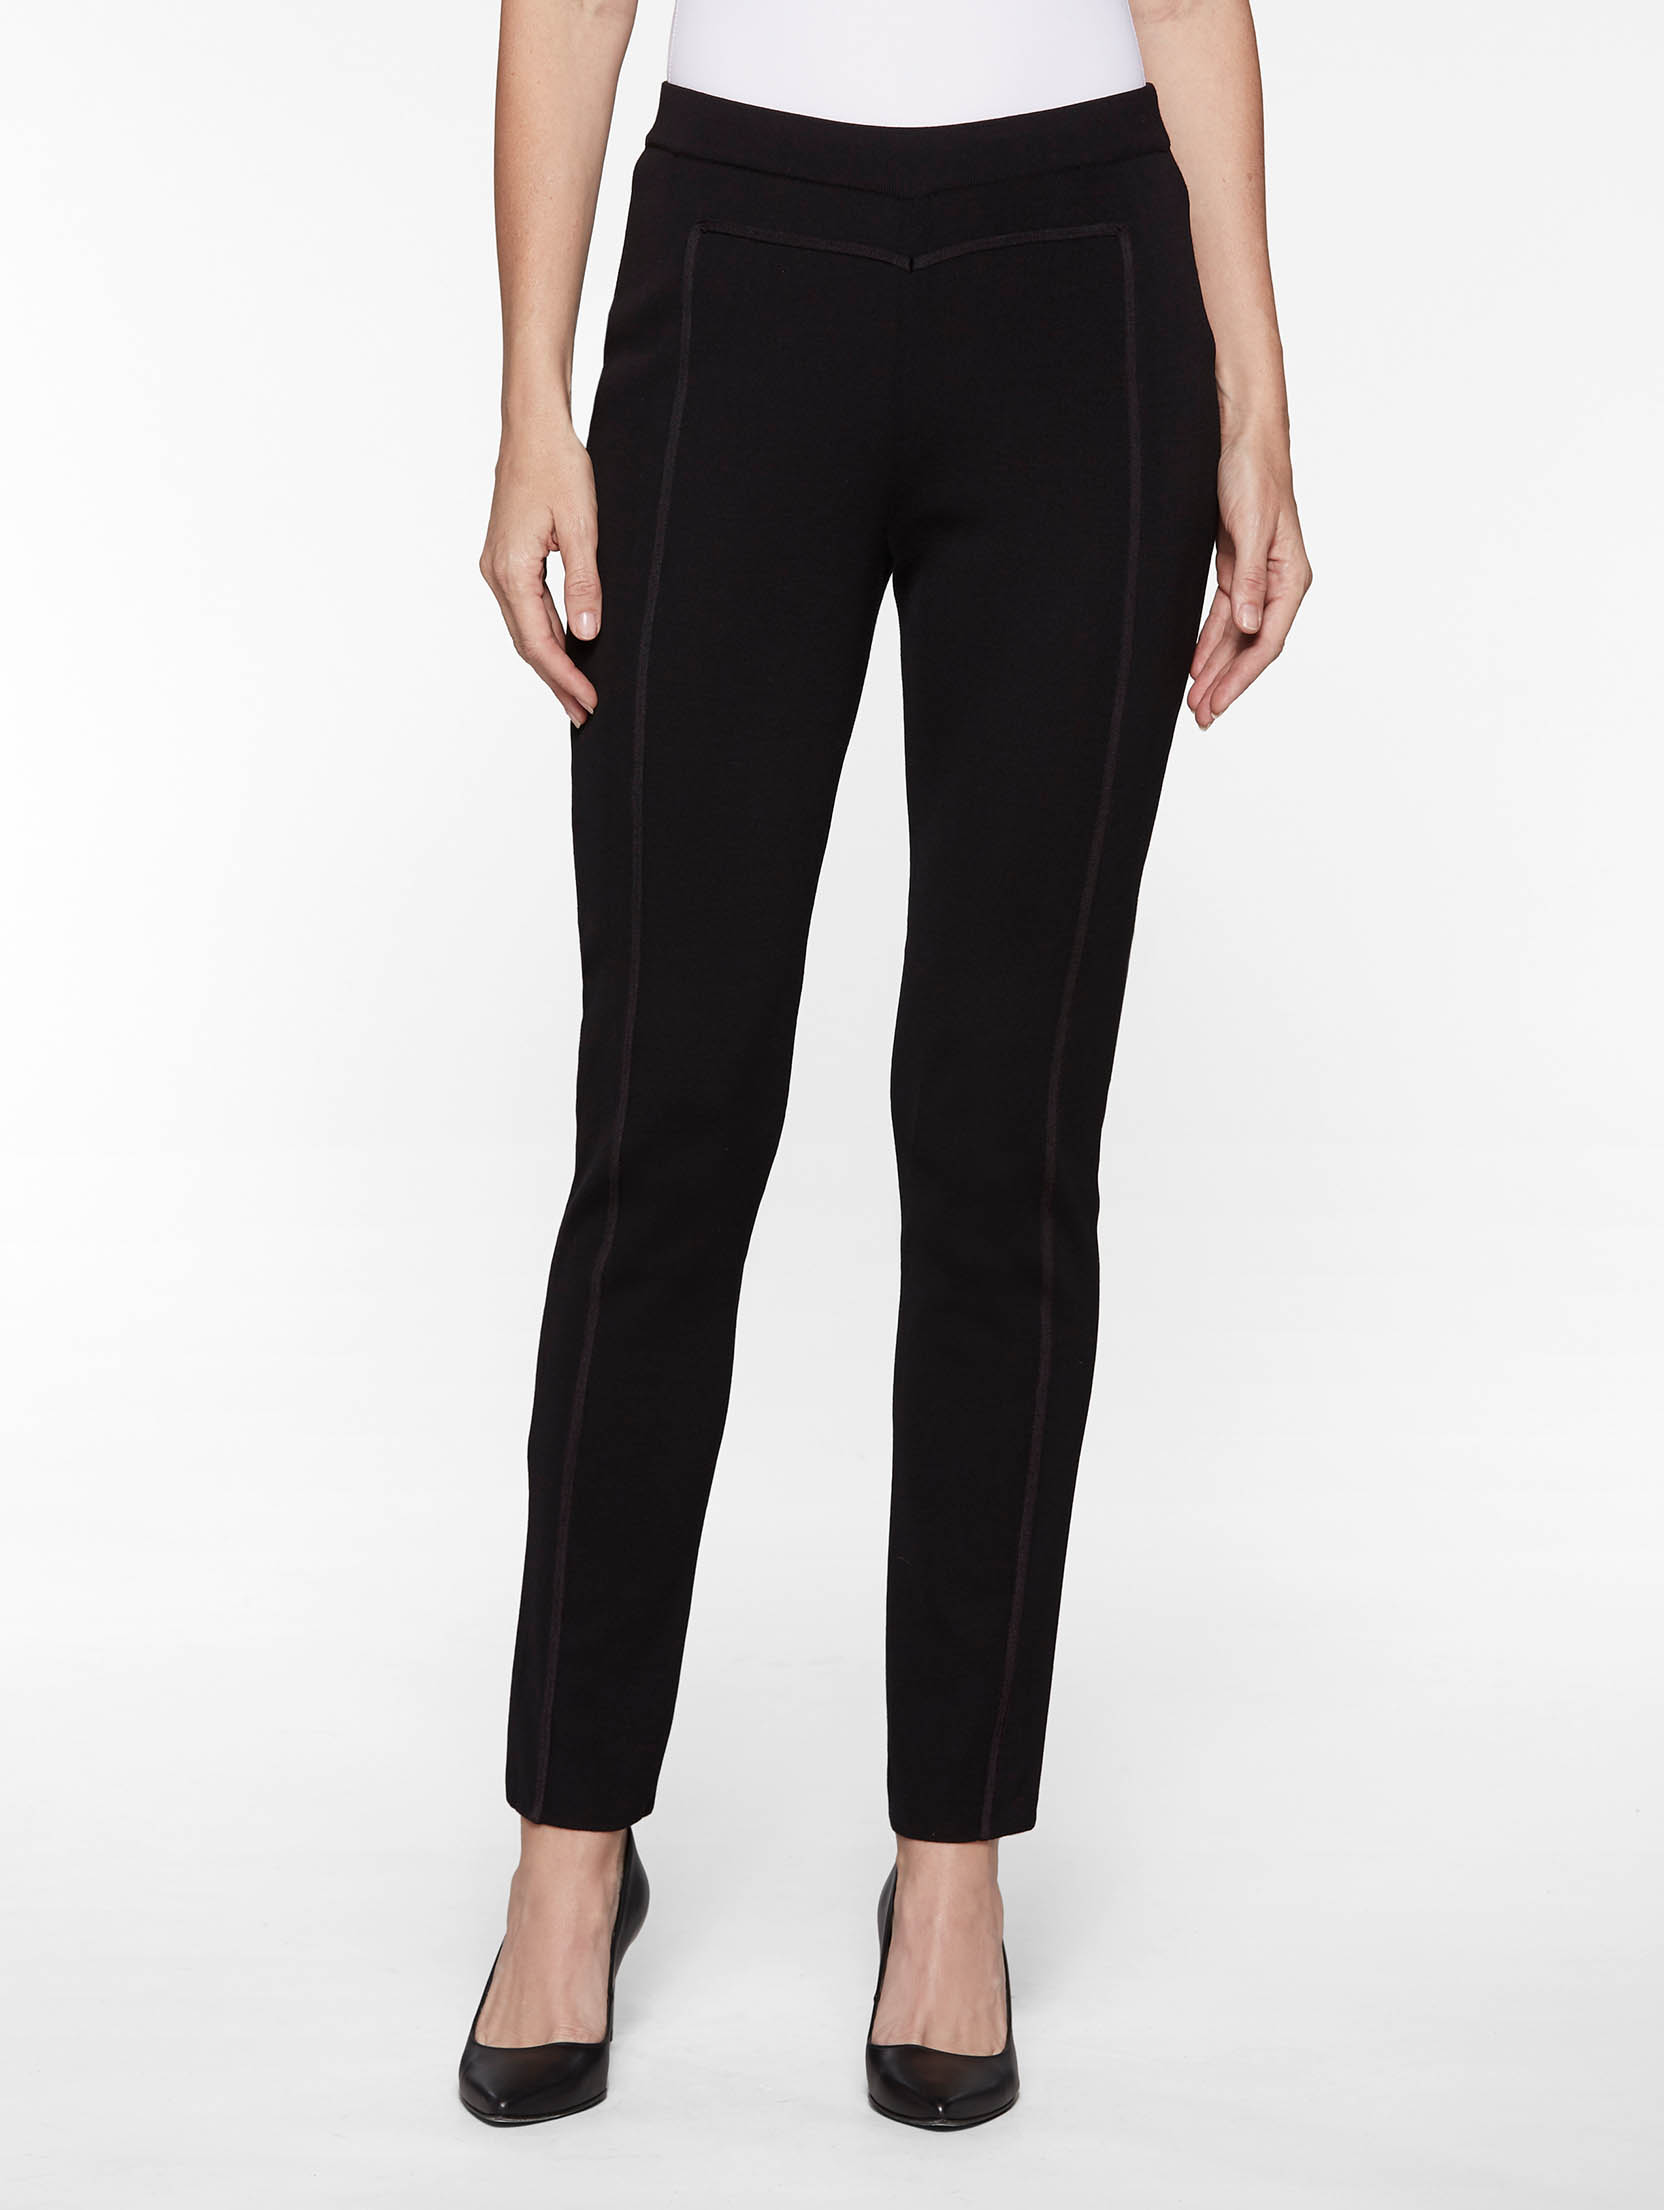 Plus Size Seam Detail Slim Leg Knit Pant, Black